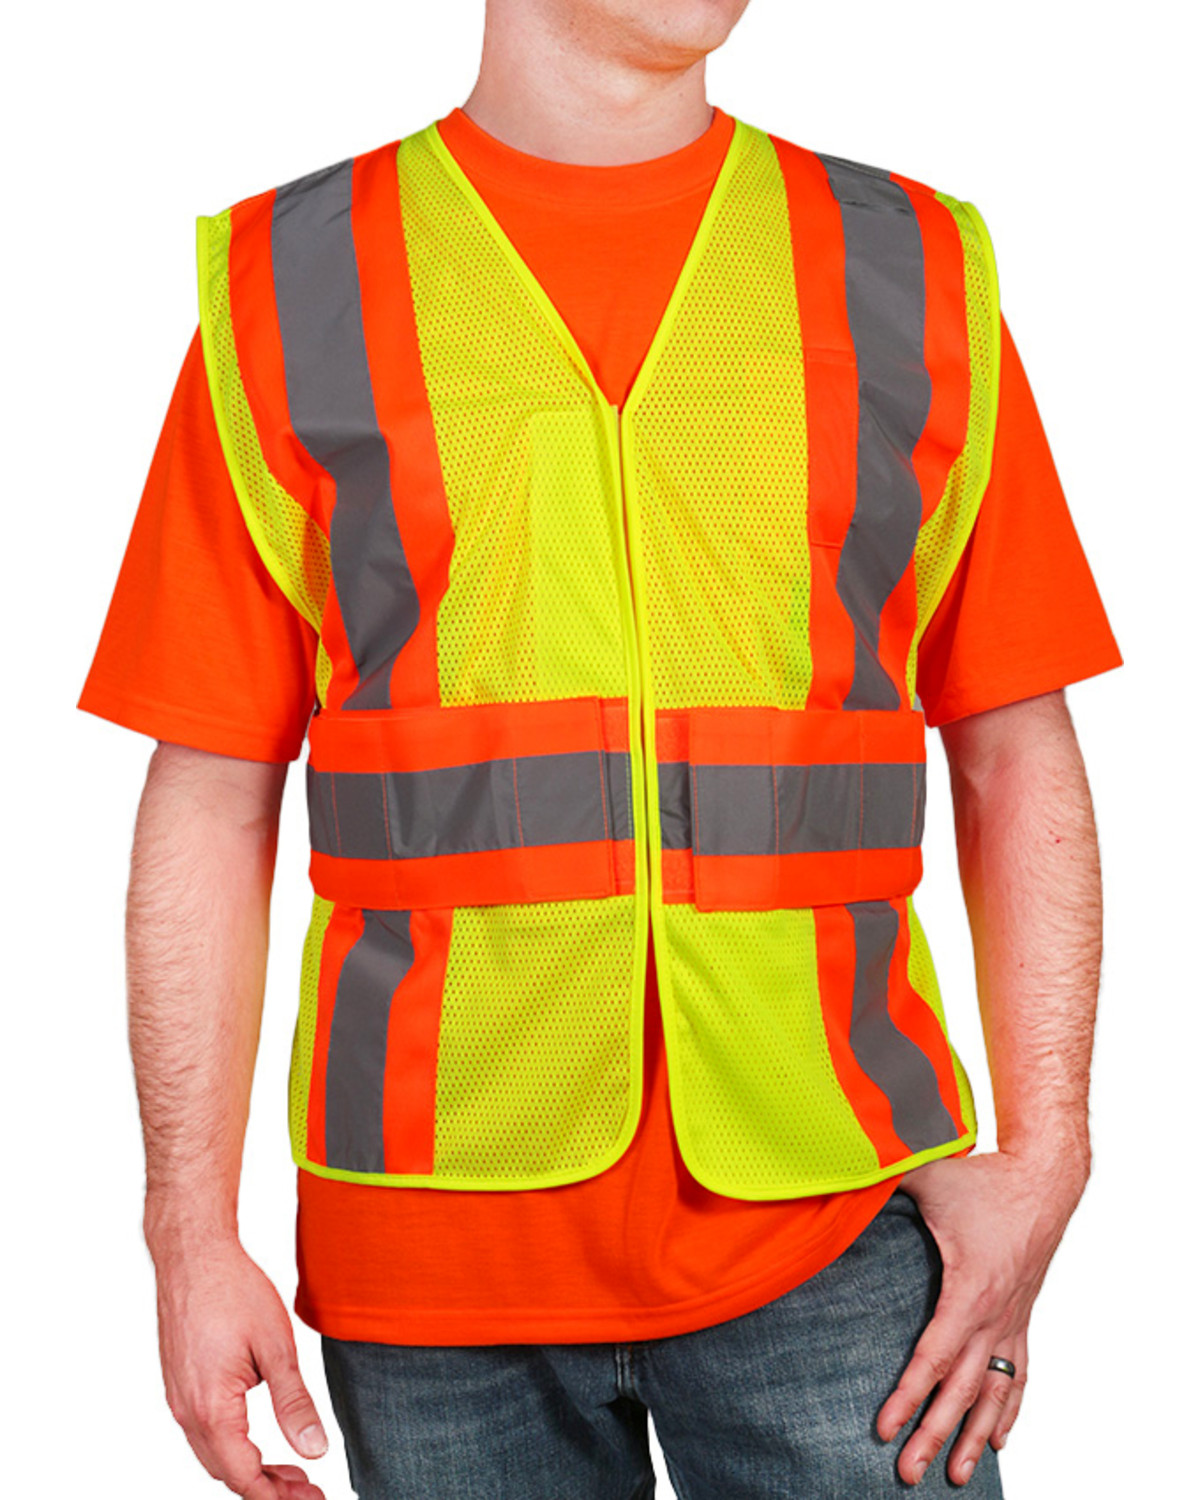 0999c83be3585 Zoomed Image American Worker Men's High Visibility Safety Vest, Yellow, ...